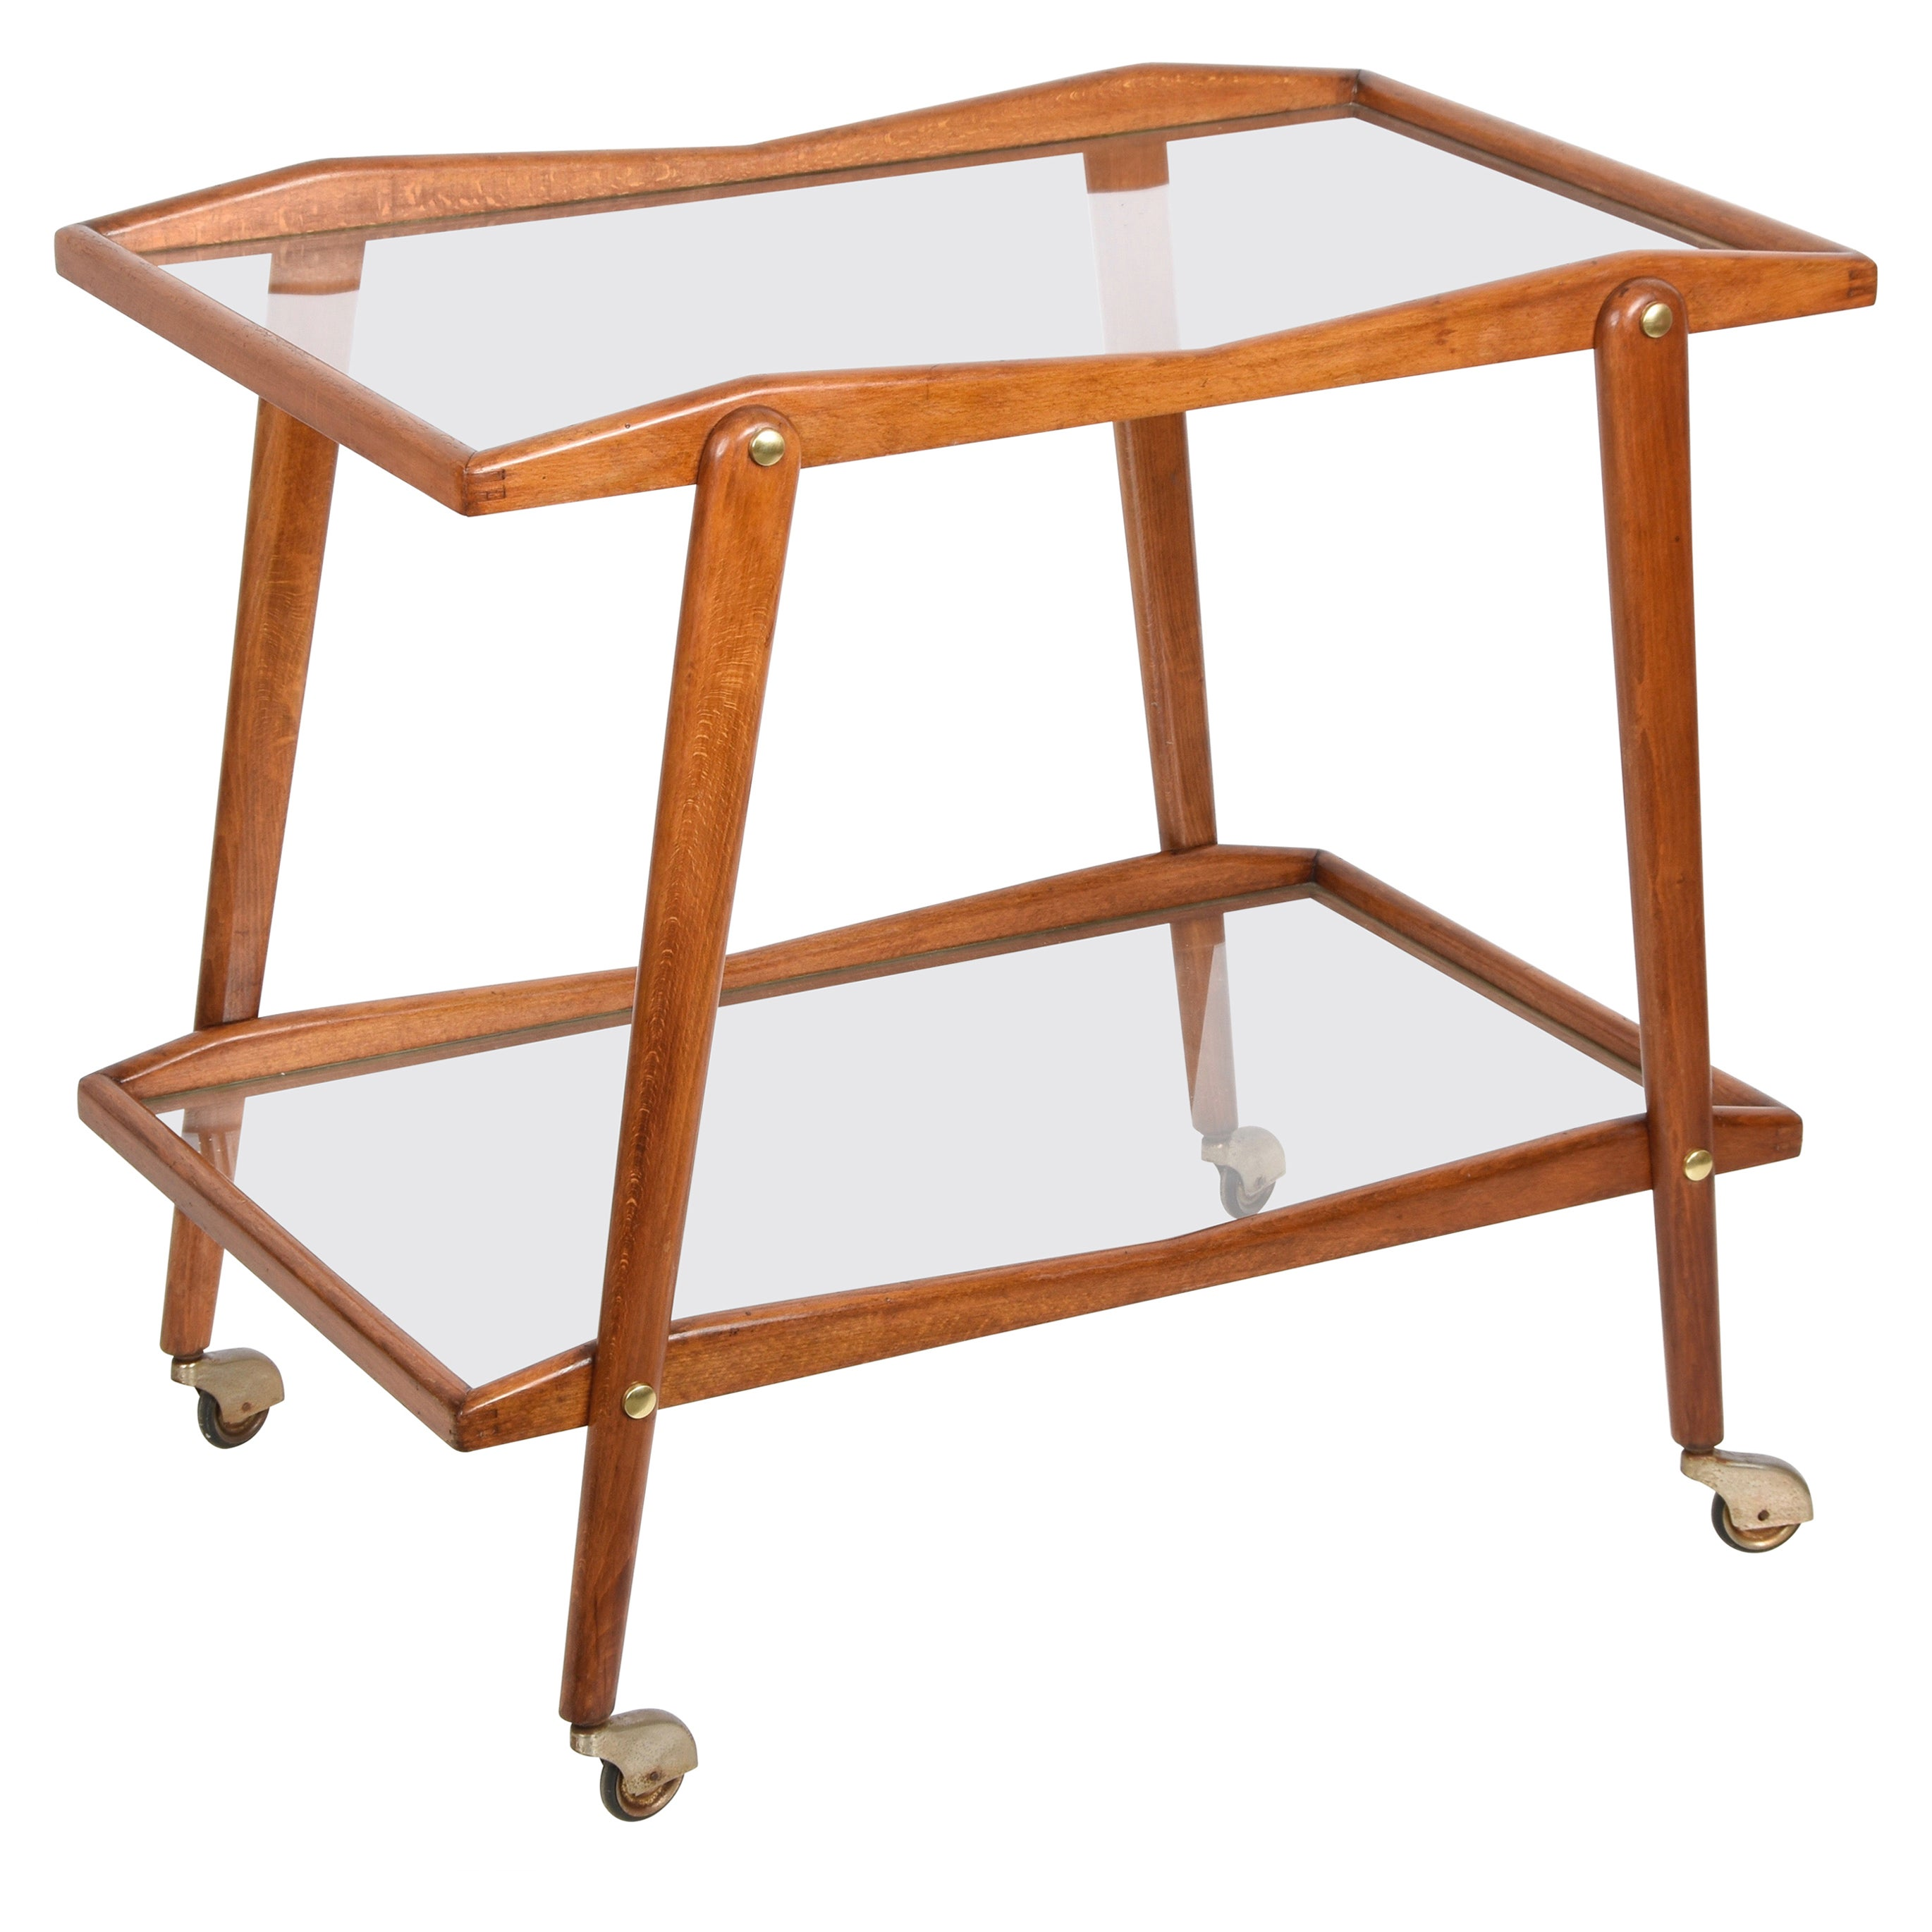 Cesare Lacca Midcentury Beech and Brass Italian Serving Bar Cart Italy, 1950s